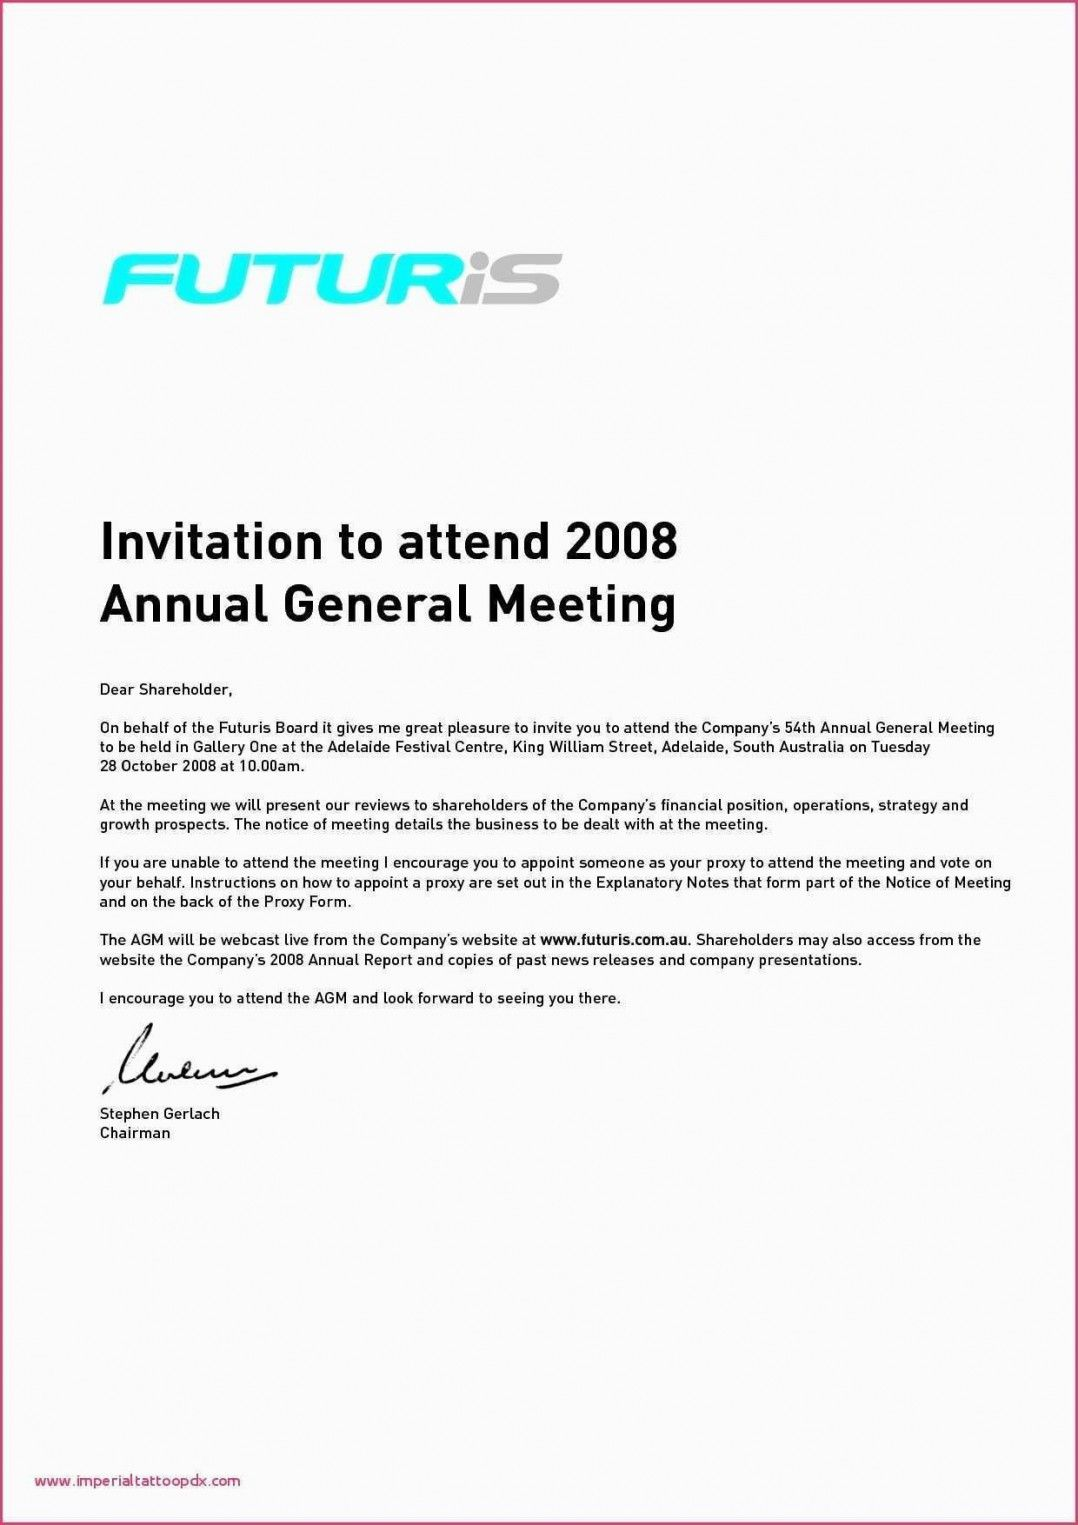 Formal Invitation Letter Ppt in 2020 Invitation